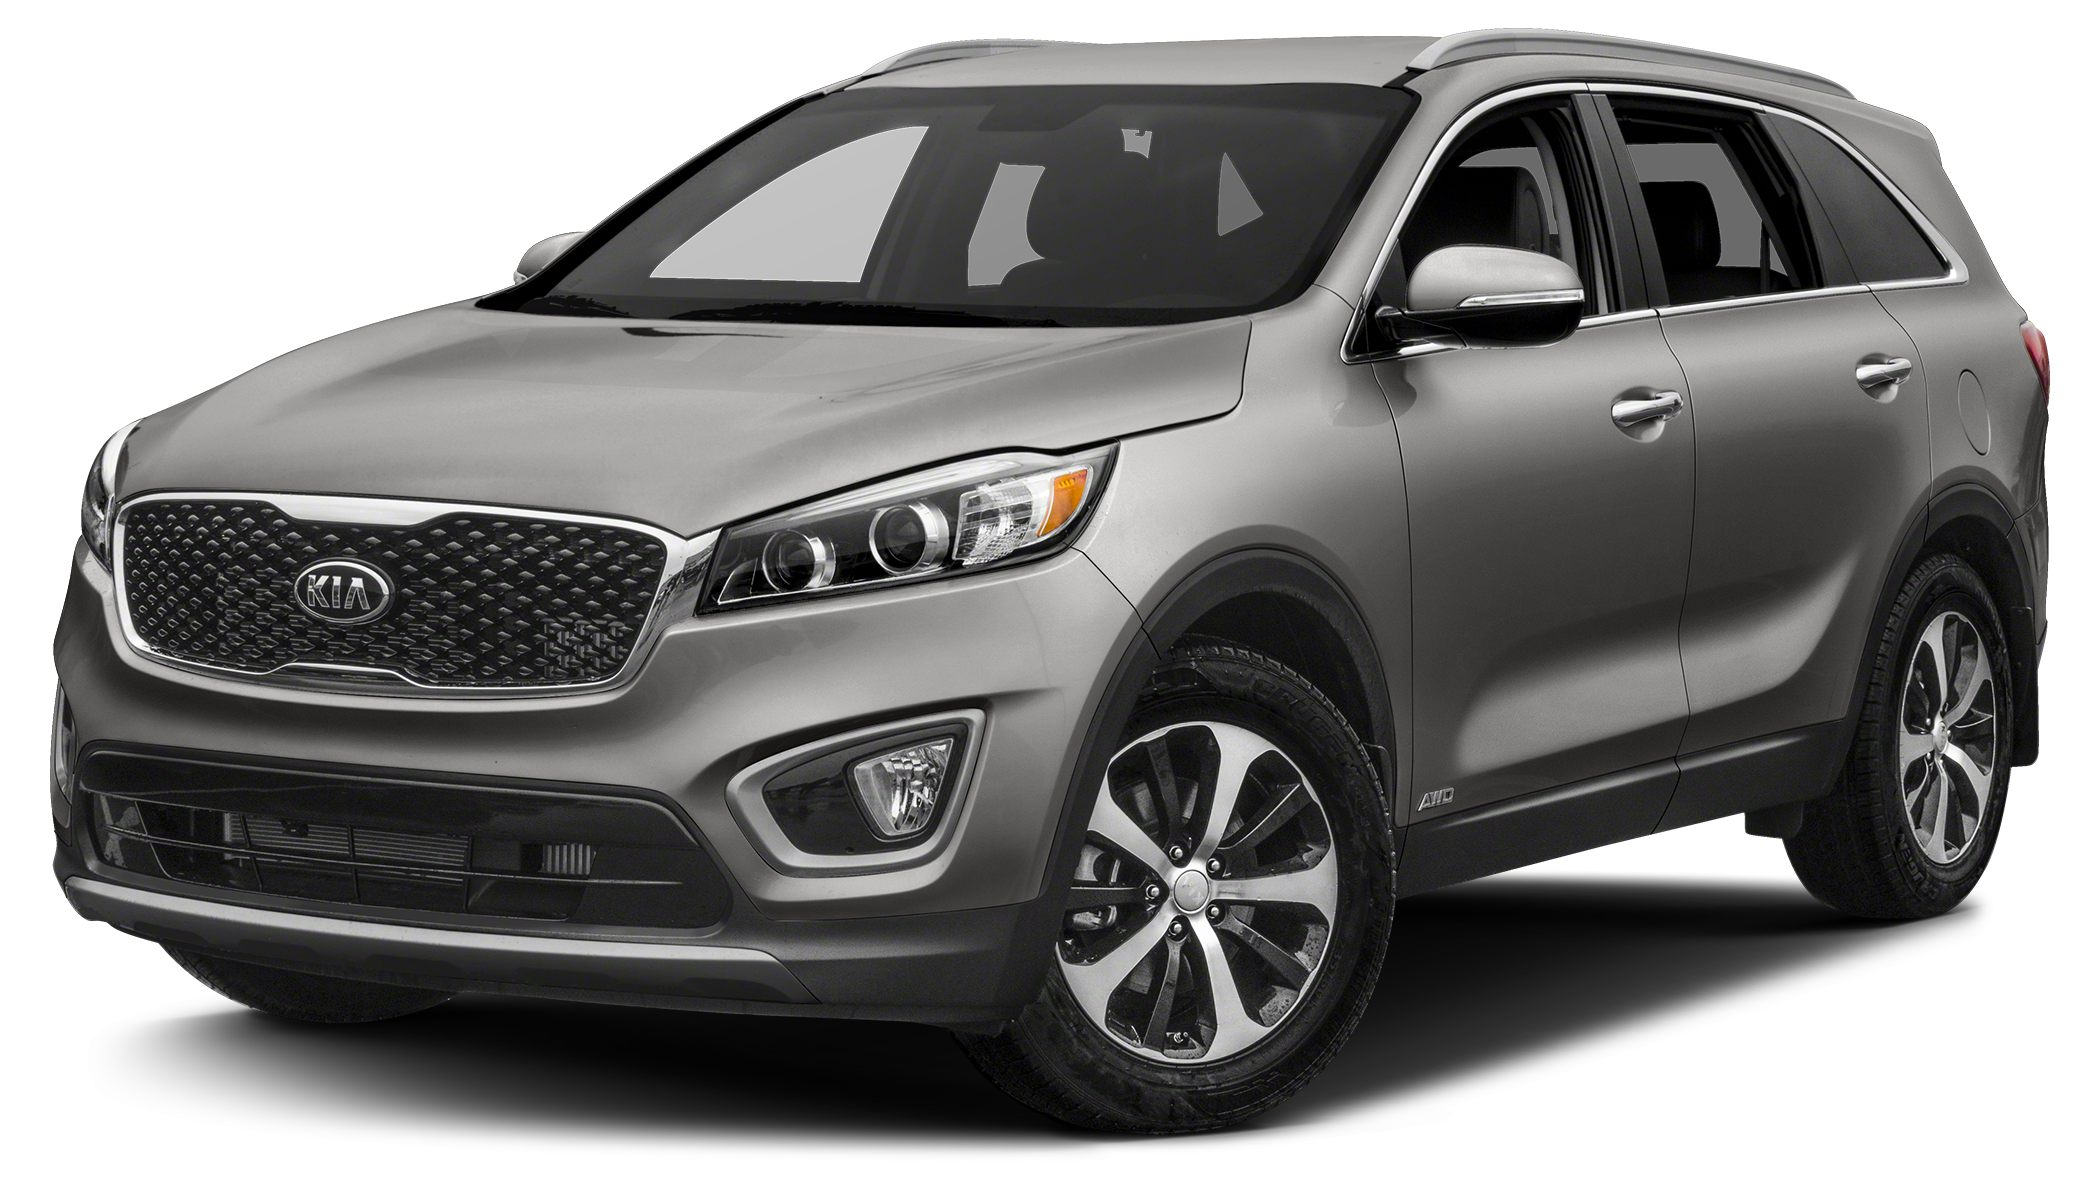 2017 Kia Sorento 20T EX New In Stock PRICE DROP This 2017 Kia Sorento 20T EX is for Kia fa